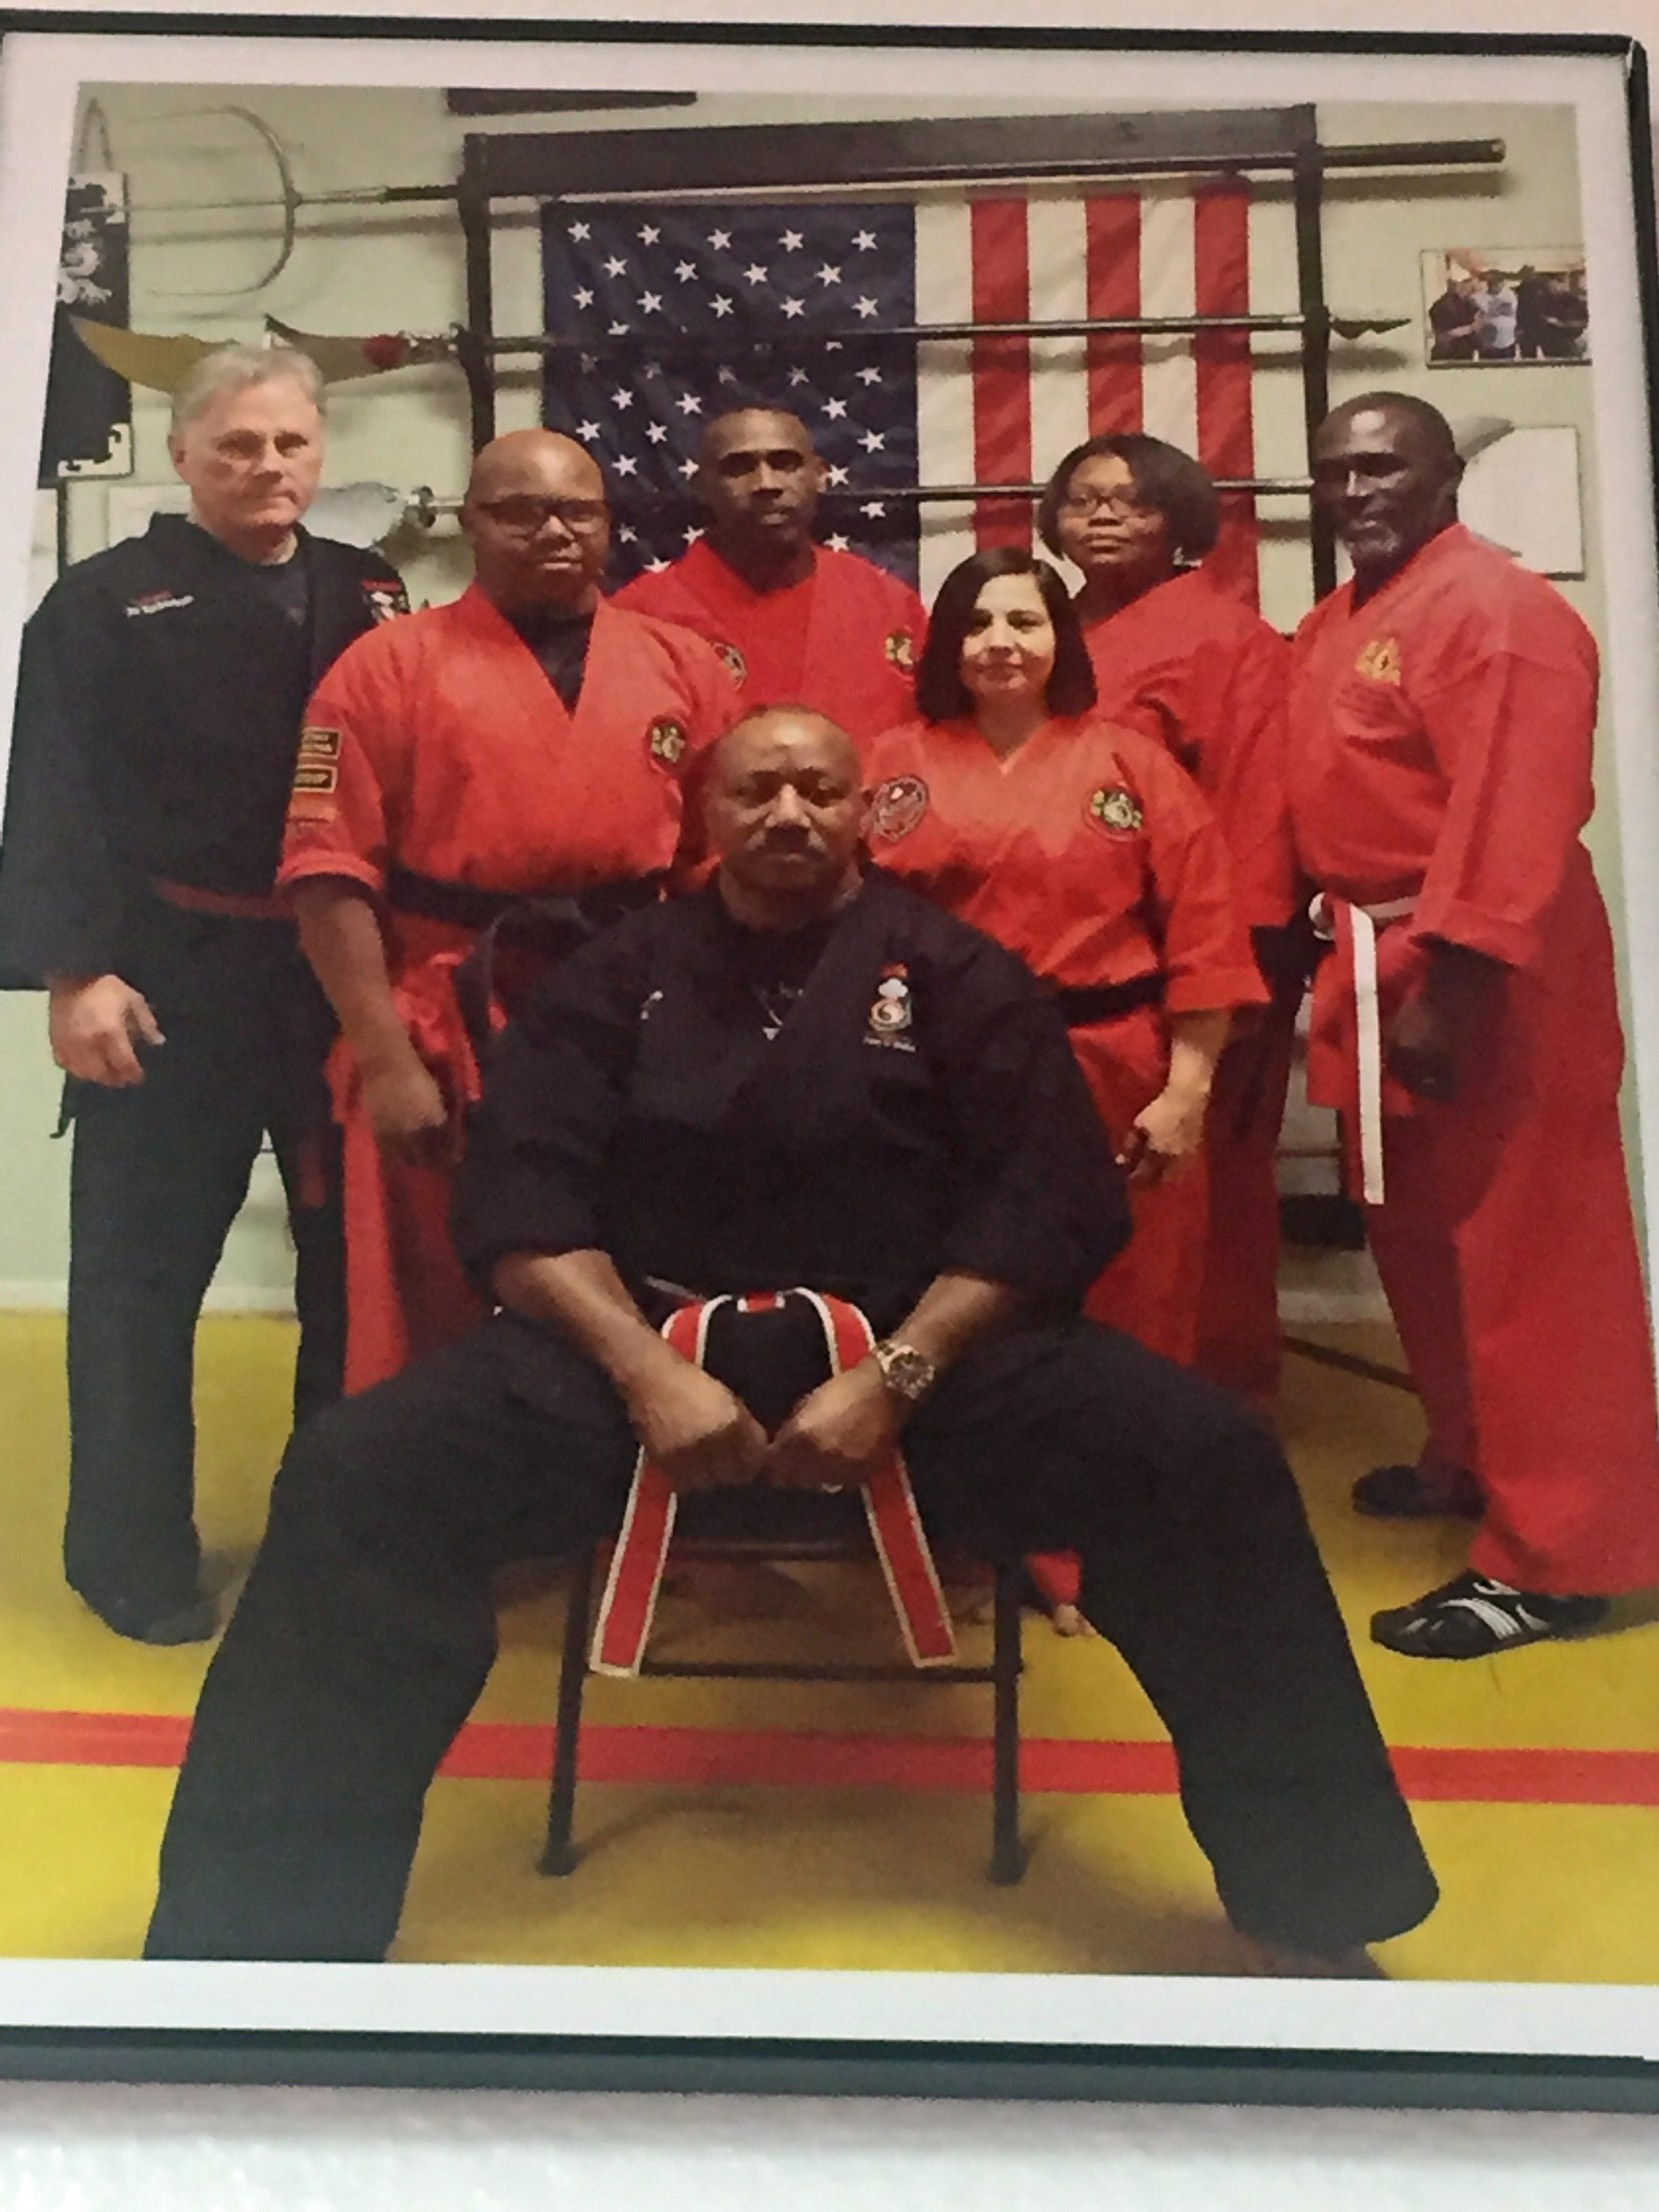 Family friends of the youngest victim of the Austin package bombings, Draylen Mason, are speaking out Tuesday to share more about the incredible young life cut short. (Photo credit: Grand Master Moses Williams, Fire Dragon Martial Arts Studio)